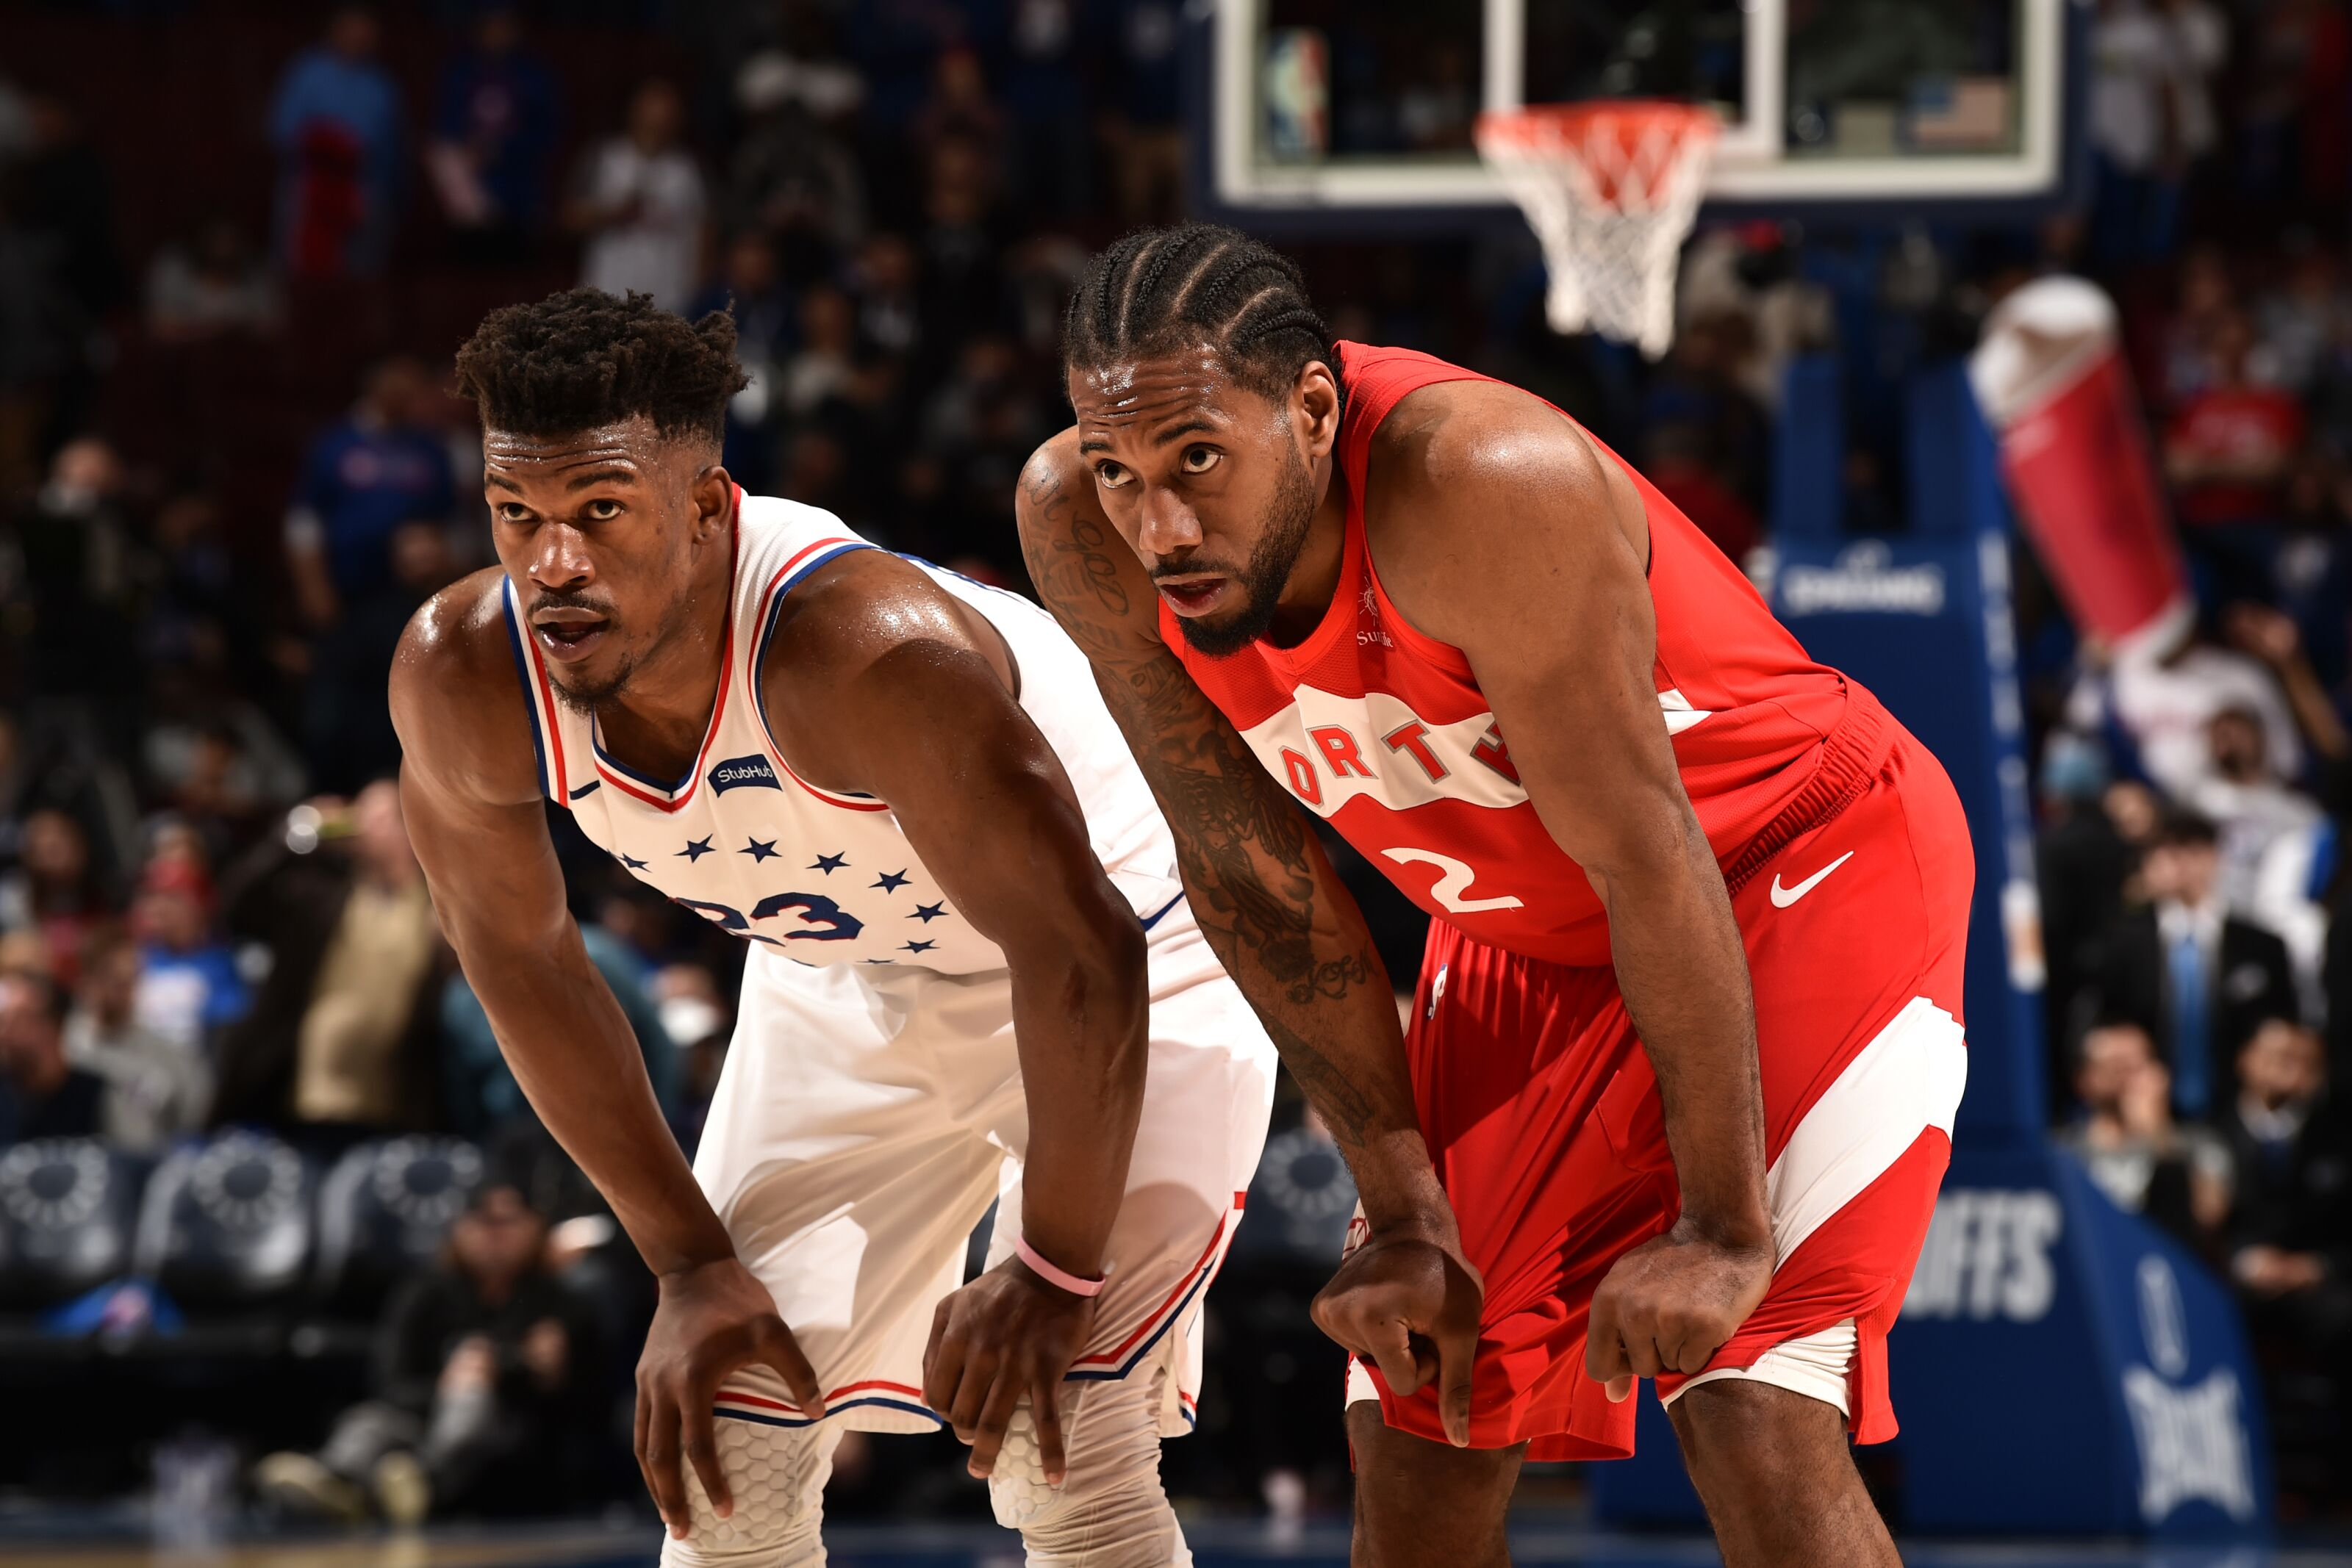 Los Angeles Lakers: Toronto Raptors show you don't need second star